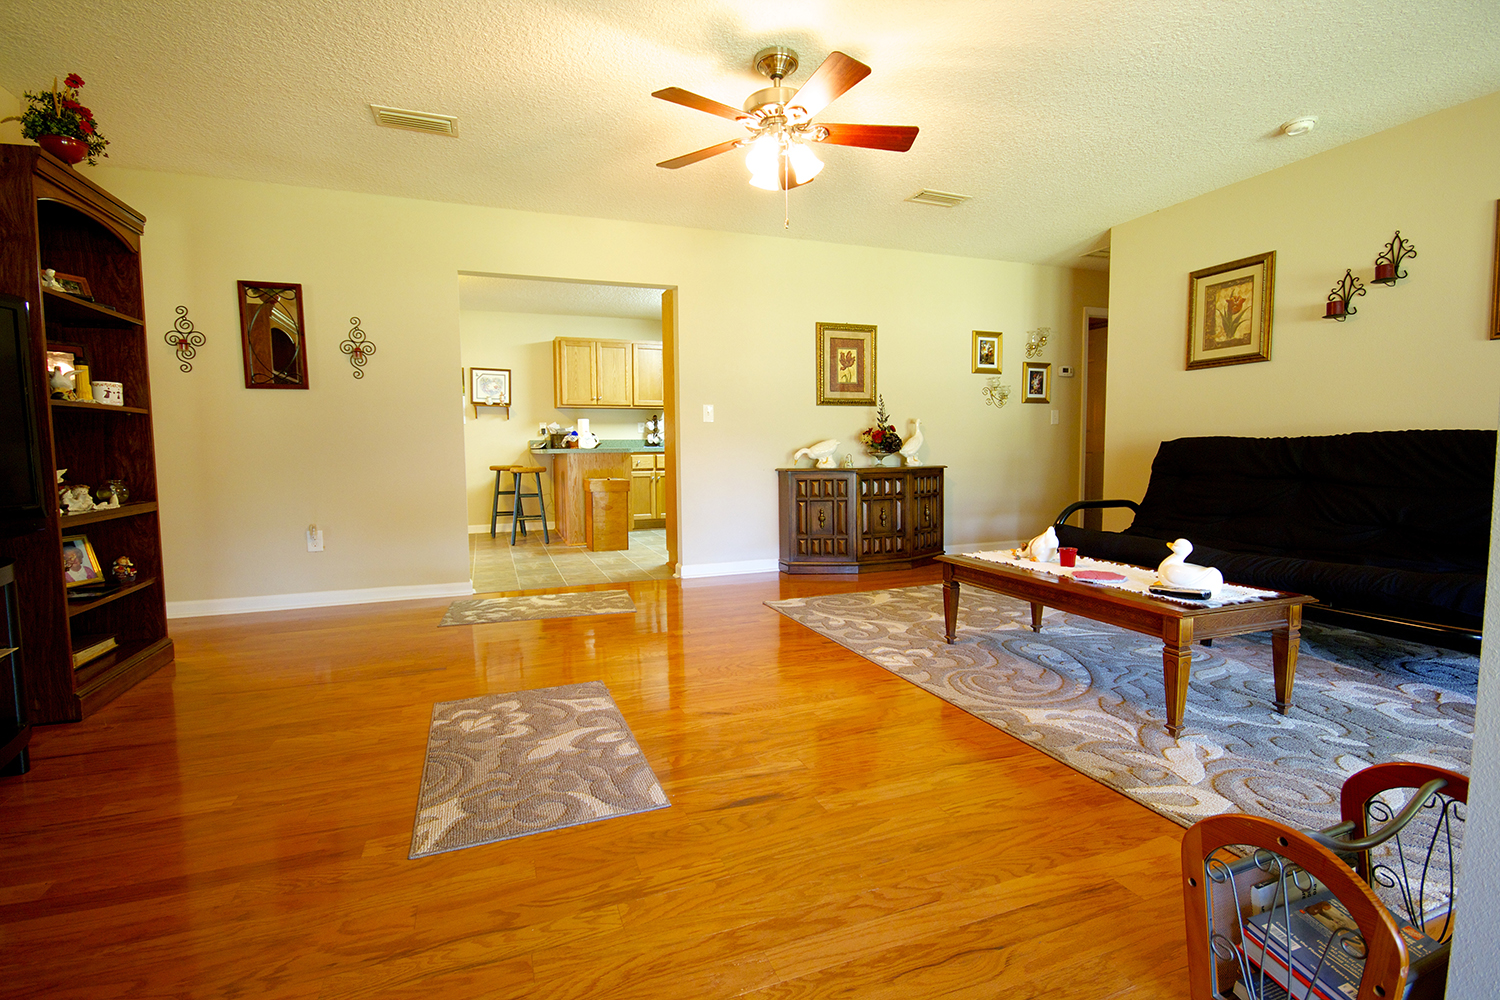 houses for sale in nassau county florida with acreage